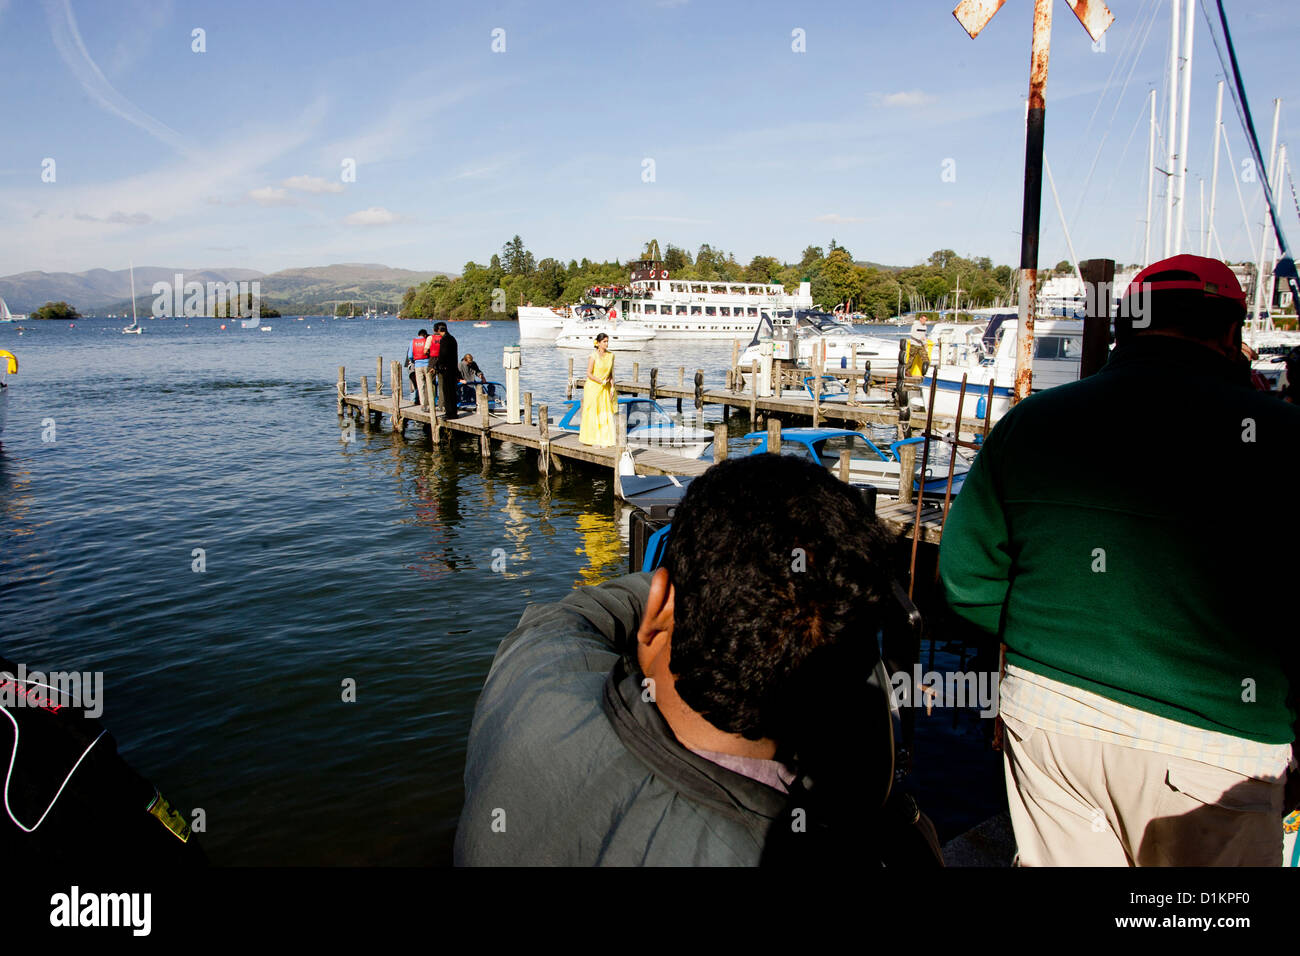 The MV Swan ,  originally steam , passenger ferry in background on Lake Windermere while Bollywood film is shot - Stock Image